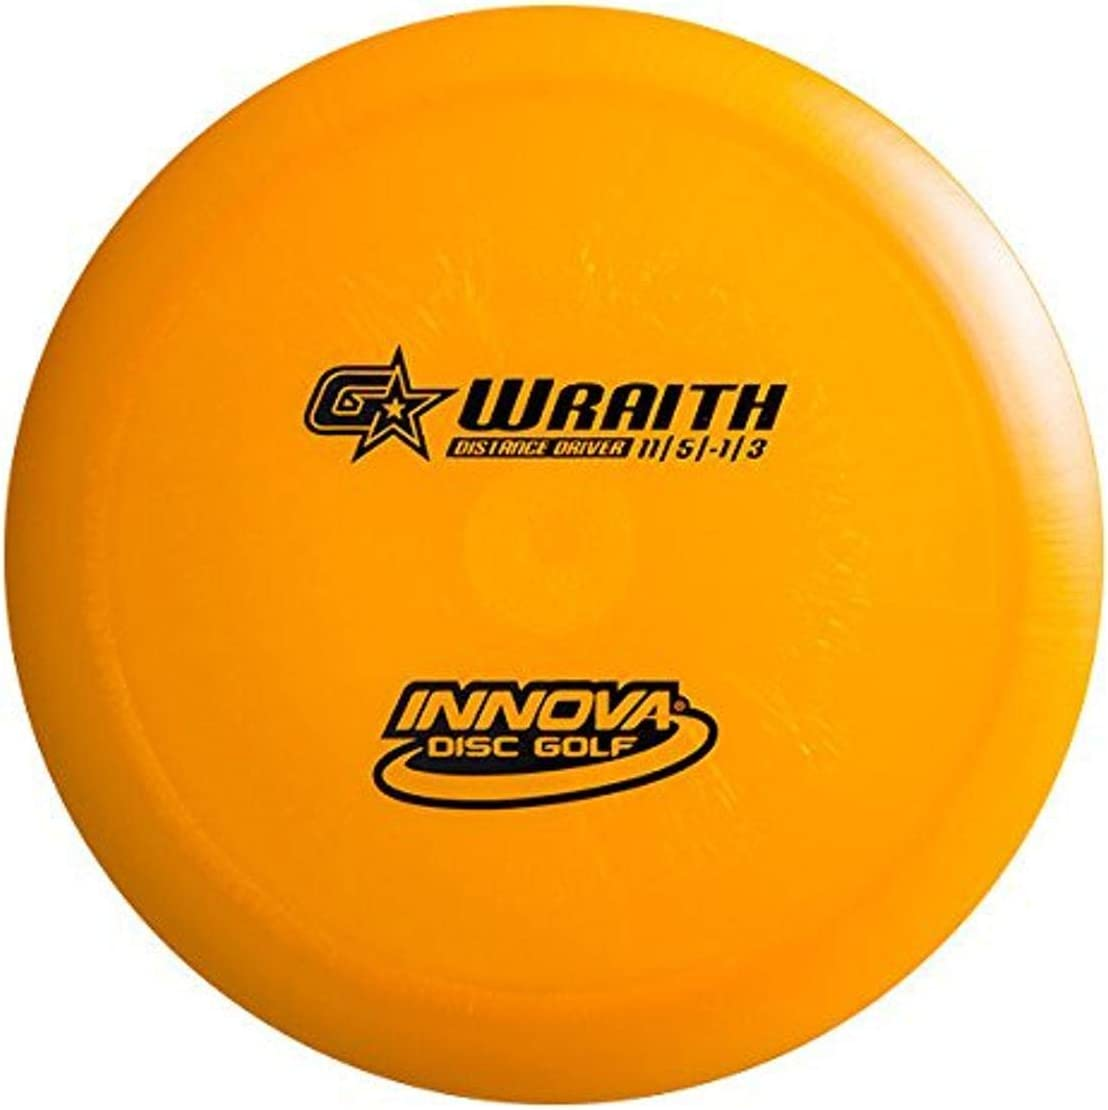 List price Innova Disc Golf GSTWR Wraith Vary Driver Max 83% OFF Colors May